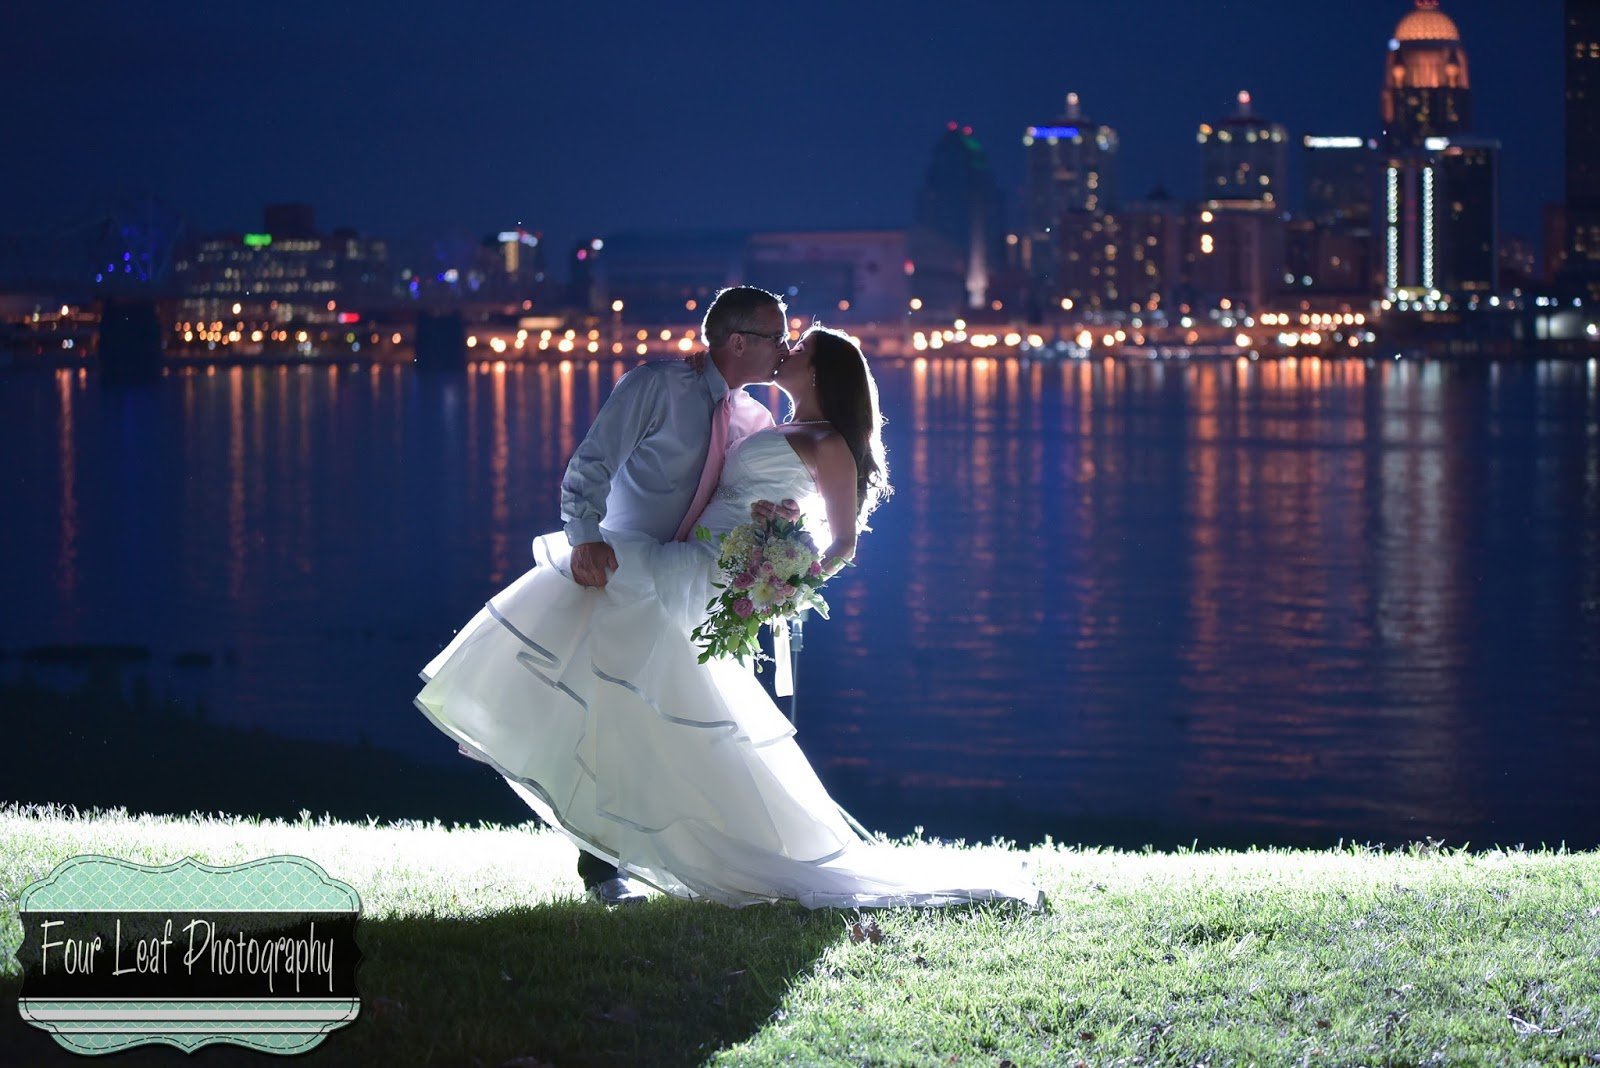 They Had A Gorgeous And Romantic Wedding Day Here In Louisville Ky Still Wanted More Pics To Help Celebrate Their